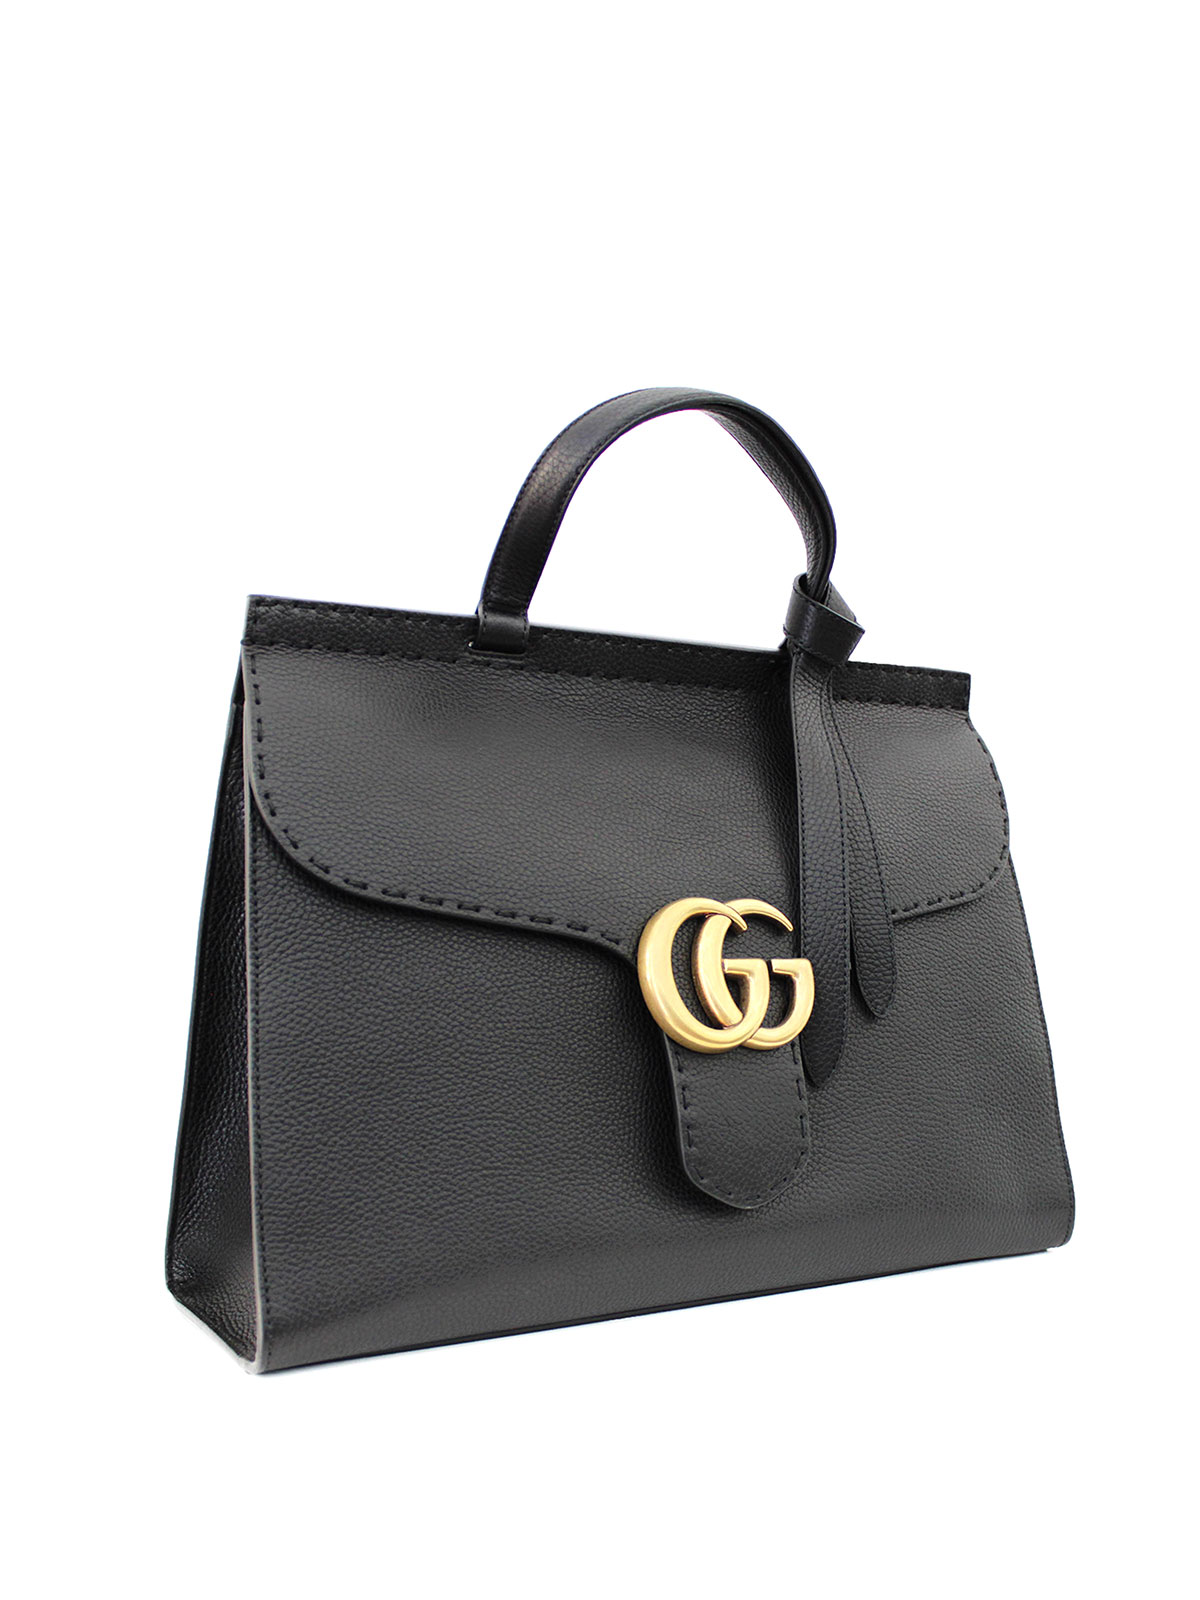 f3def0f4c82 Gucci - Marmont large leather tote - totes bags - 418702 A7M0T 1000